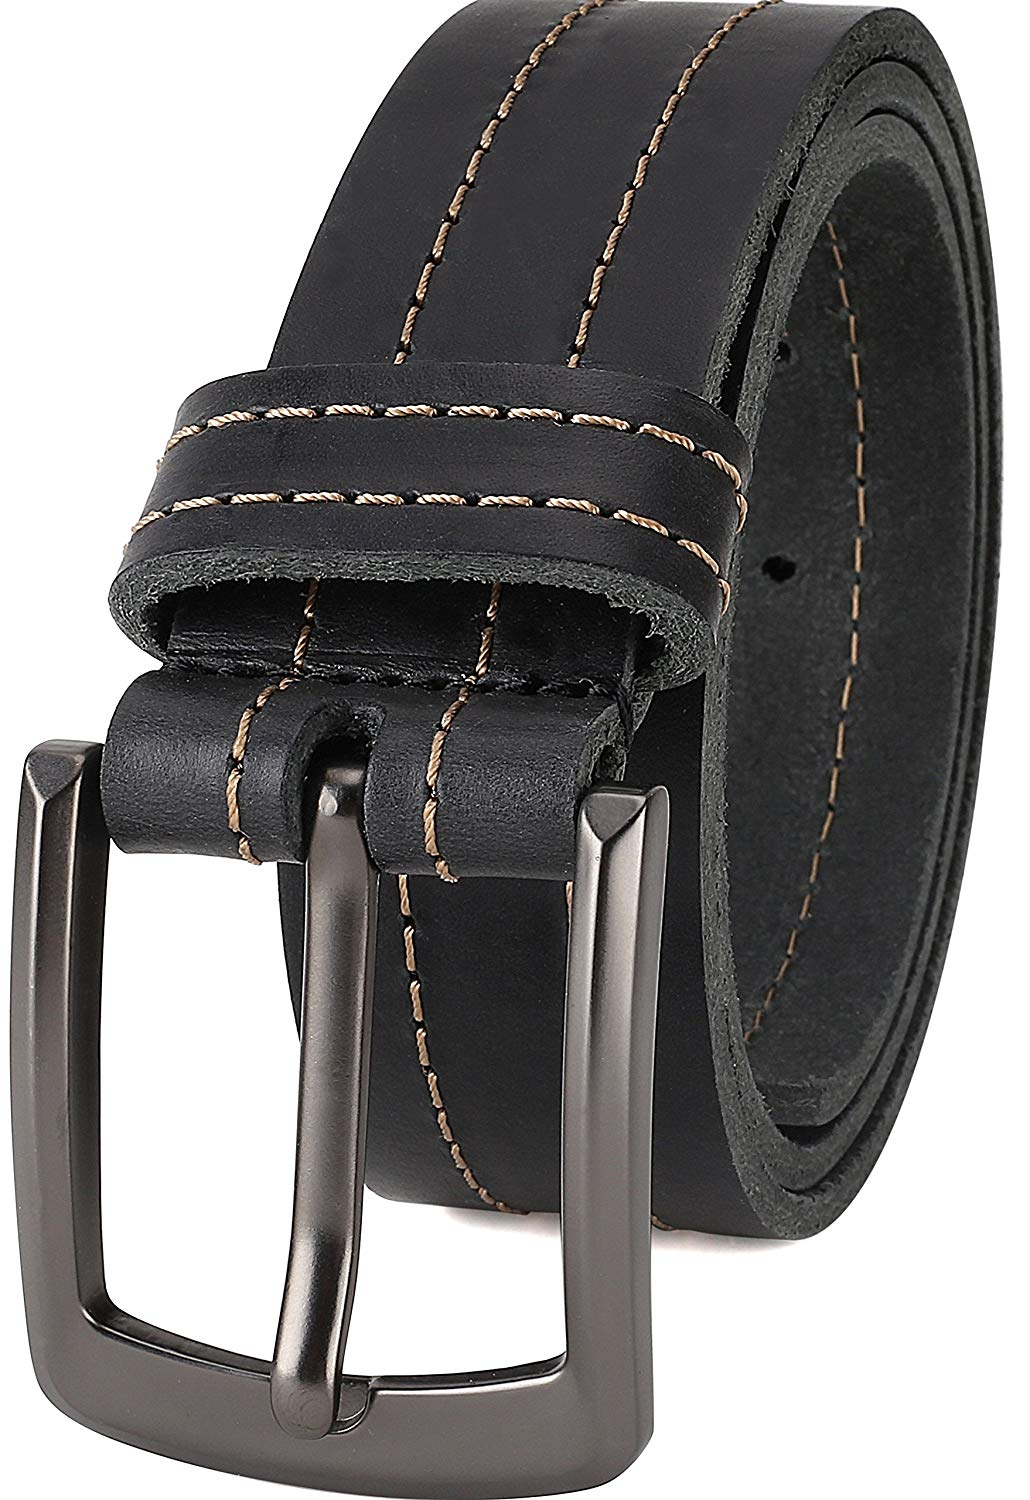 """Men's Full Grain One Piece leather Double Stitched Belt, 1.5"""" Wide, Made in USA"""